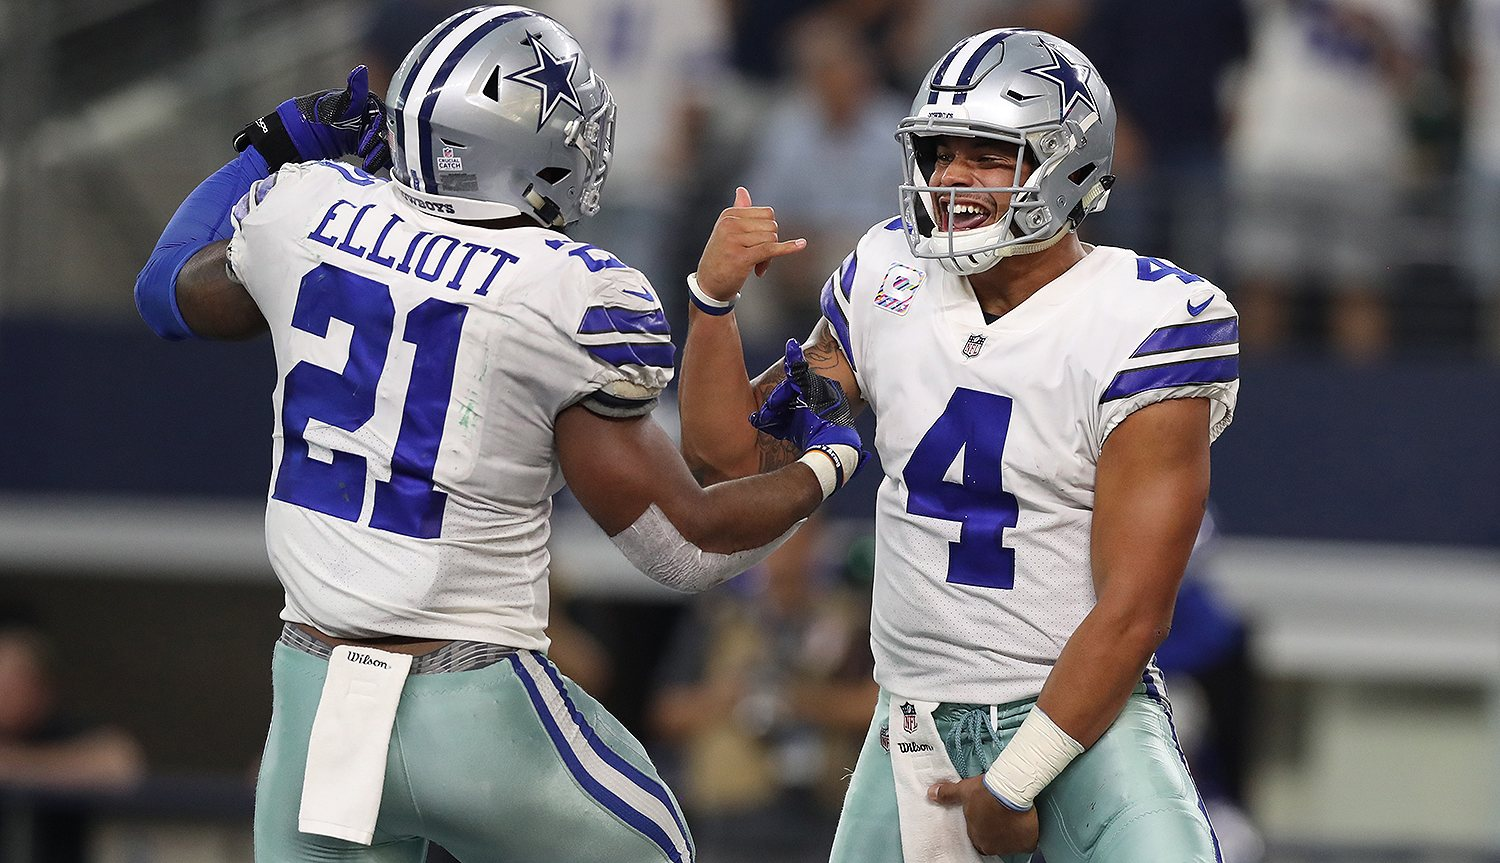 Jerry Jones: Cowboys 'Not In Anything' Without Improved Play